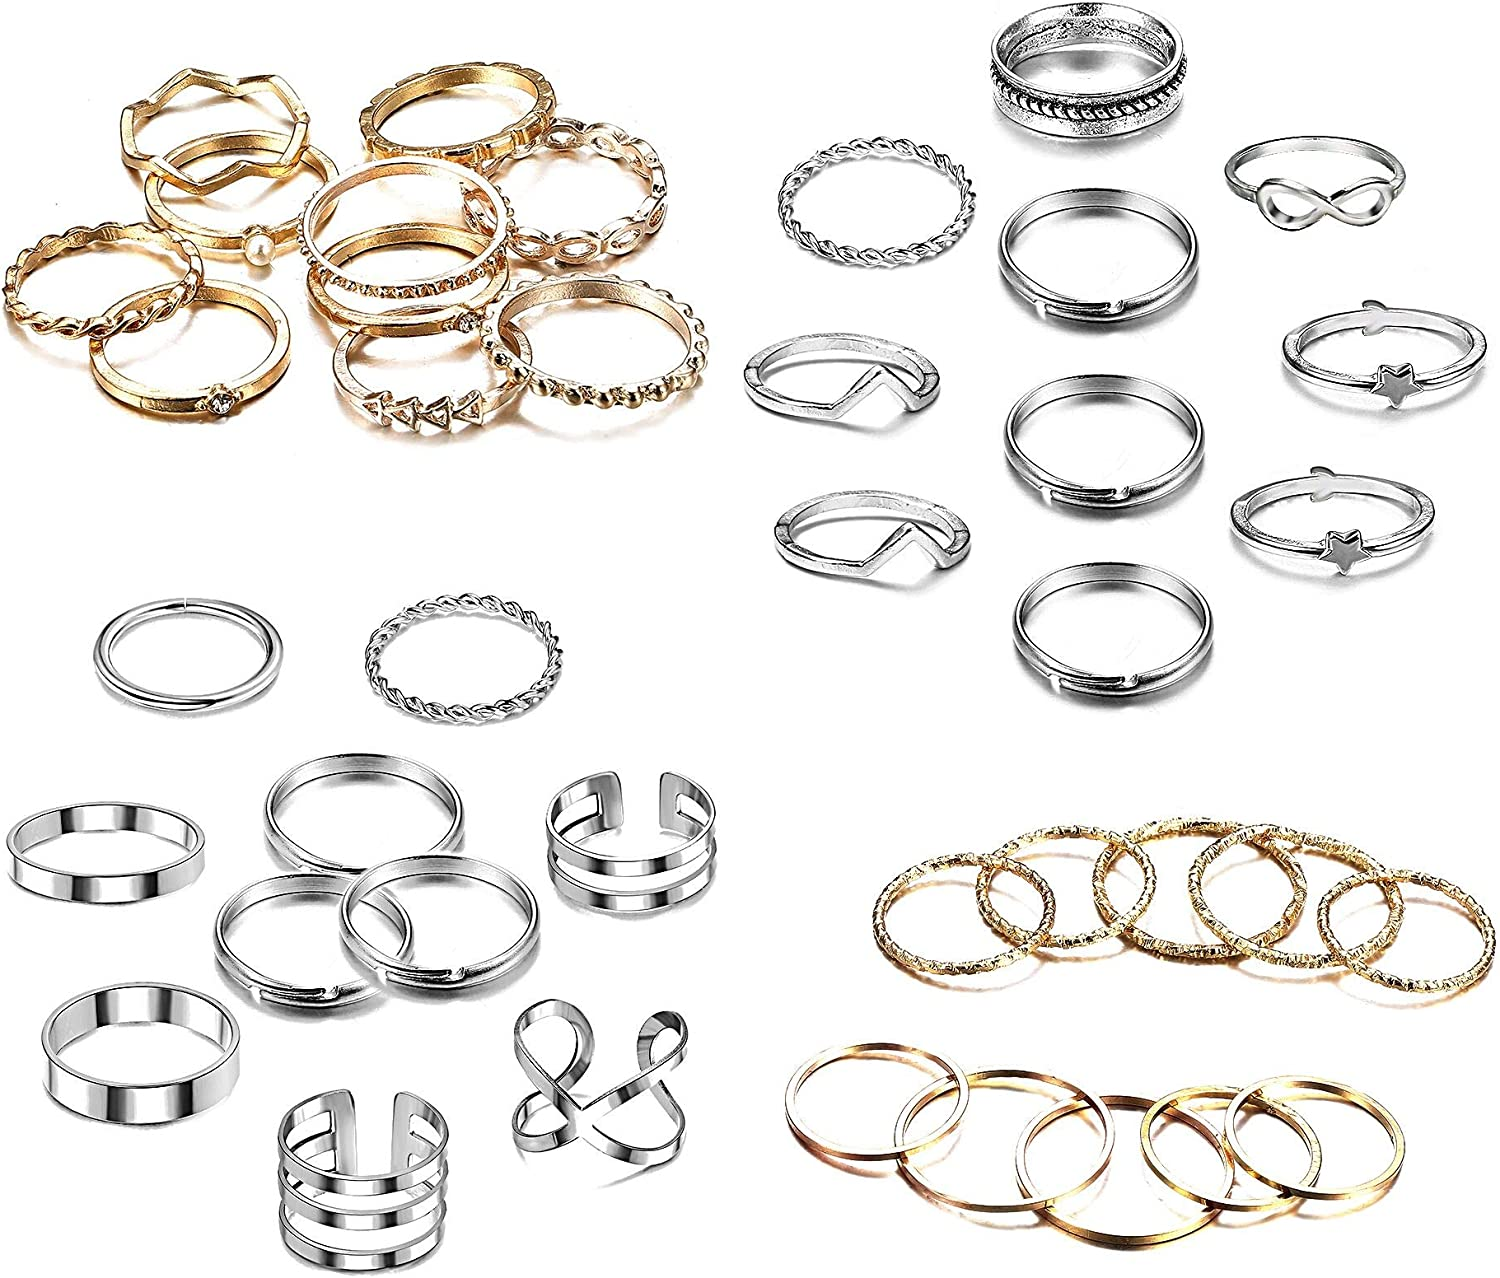 sailimue 40 PCS Simple Knuckle Midi Ring Set for Women Men Bohemian Vintage Finger Stackable Rings Set DIY Jewelry Gifts Silver/Gold Tone